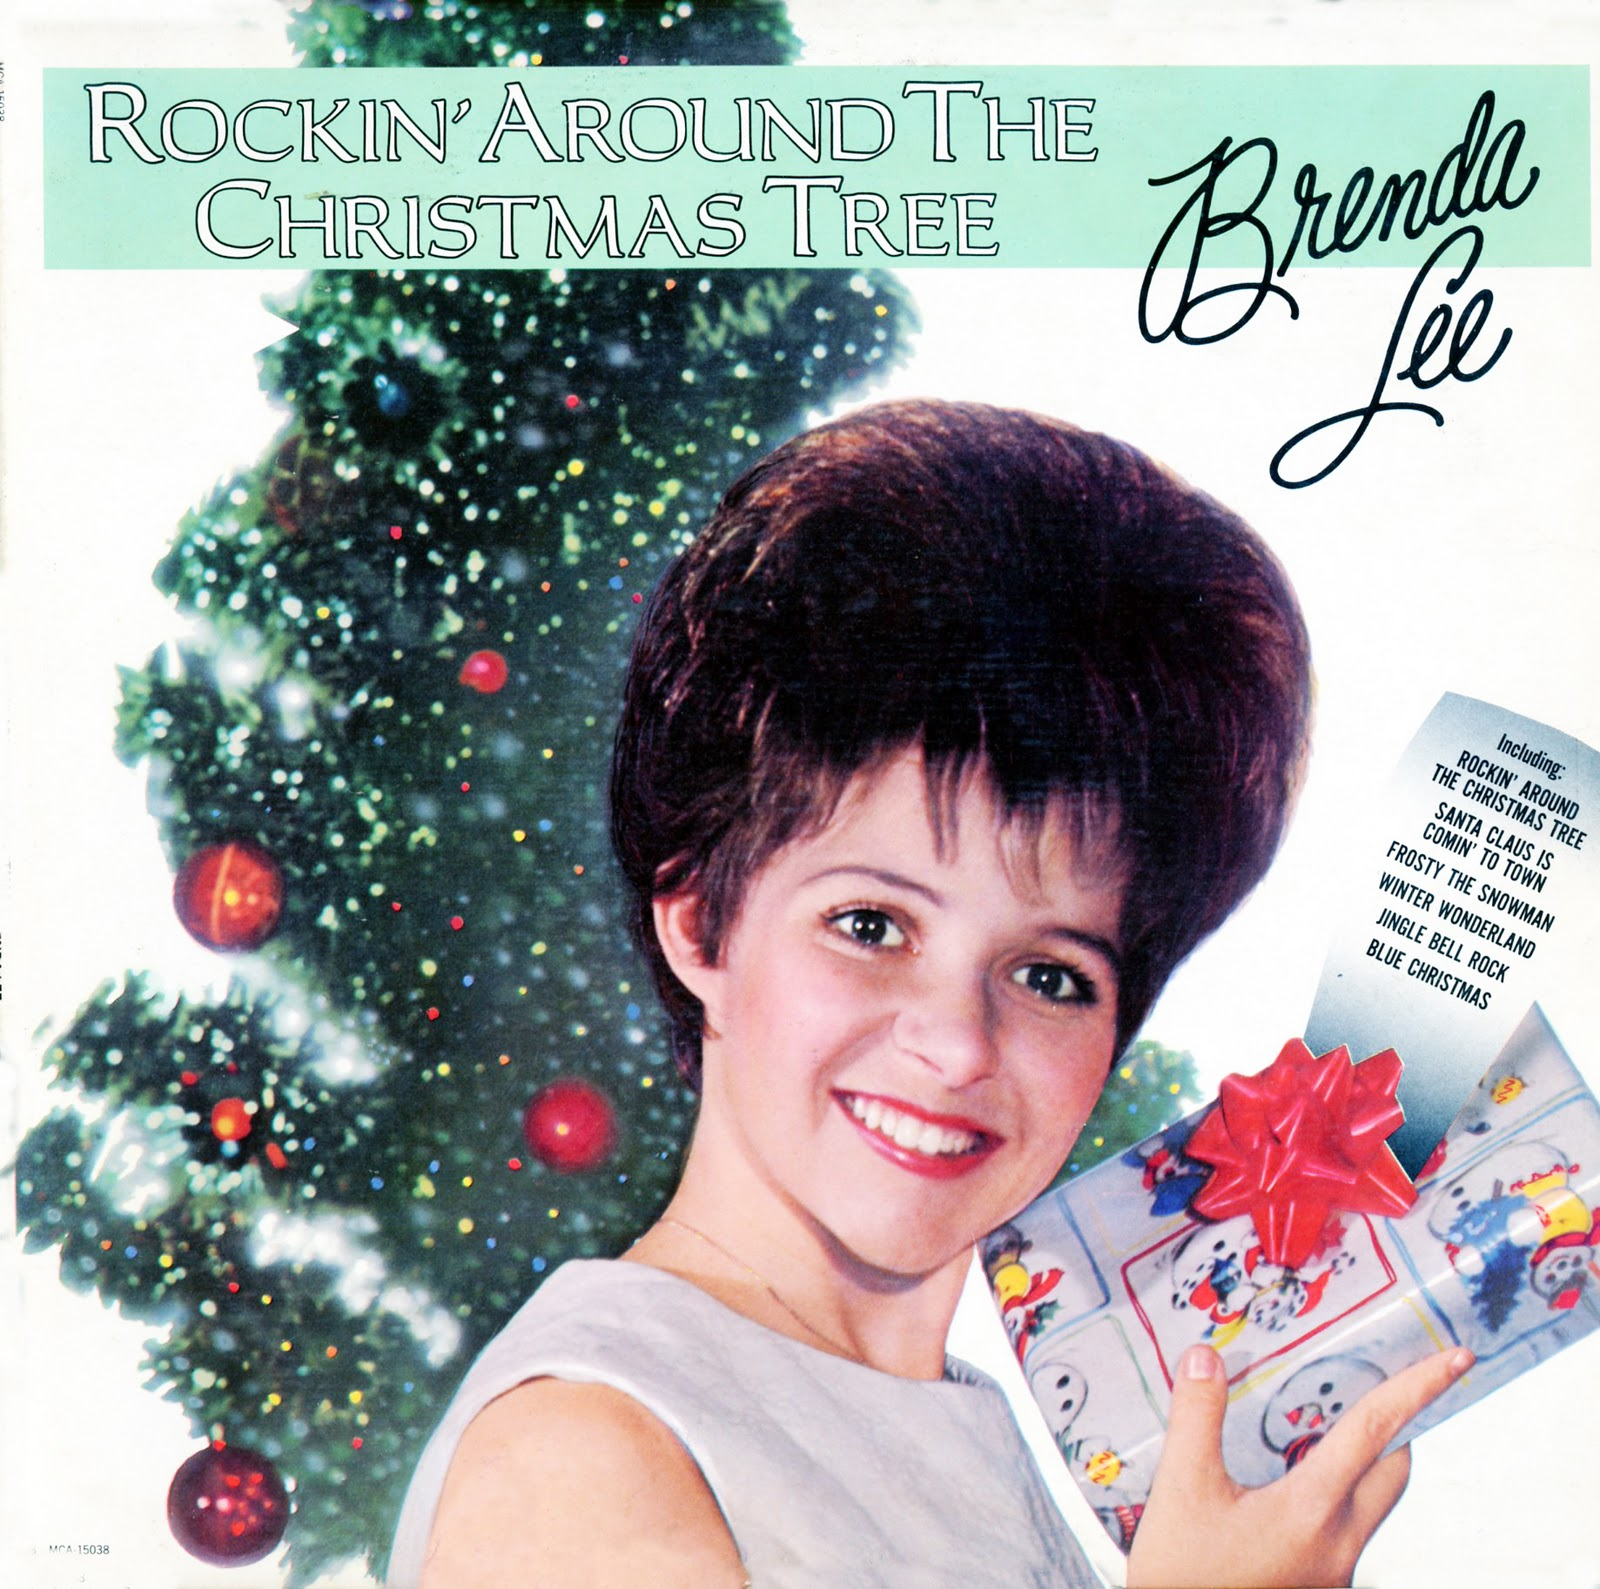 http://3.bp.blogspot.com/-O6eZ7AnuVCs/Tvt5gMZdltI/AAAAAAAAAdc/UiKnHd32wtg/s1600/Brenda+Lee+-+Rockin%2527+Around+The+Christmas+Tree.jpg